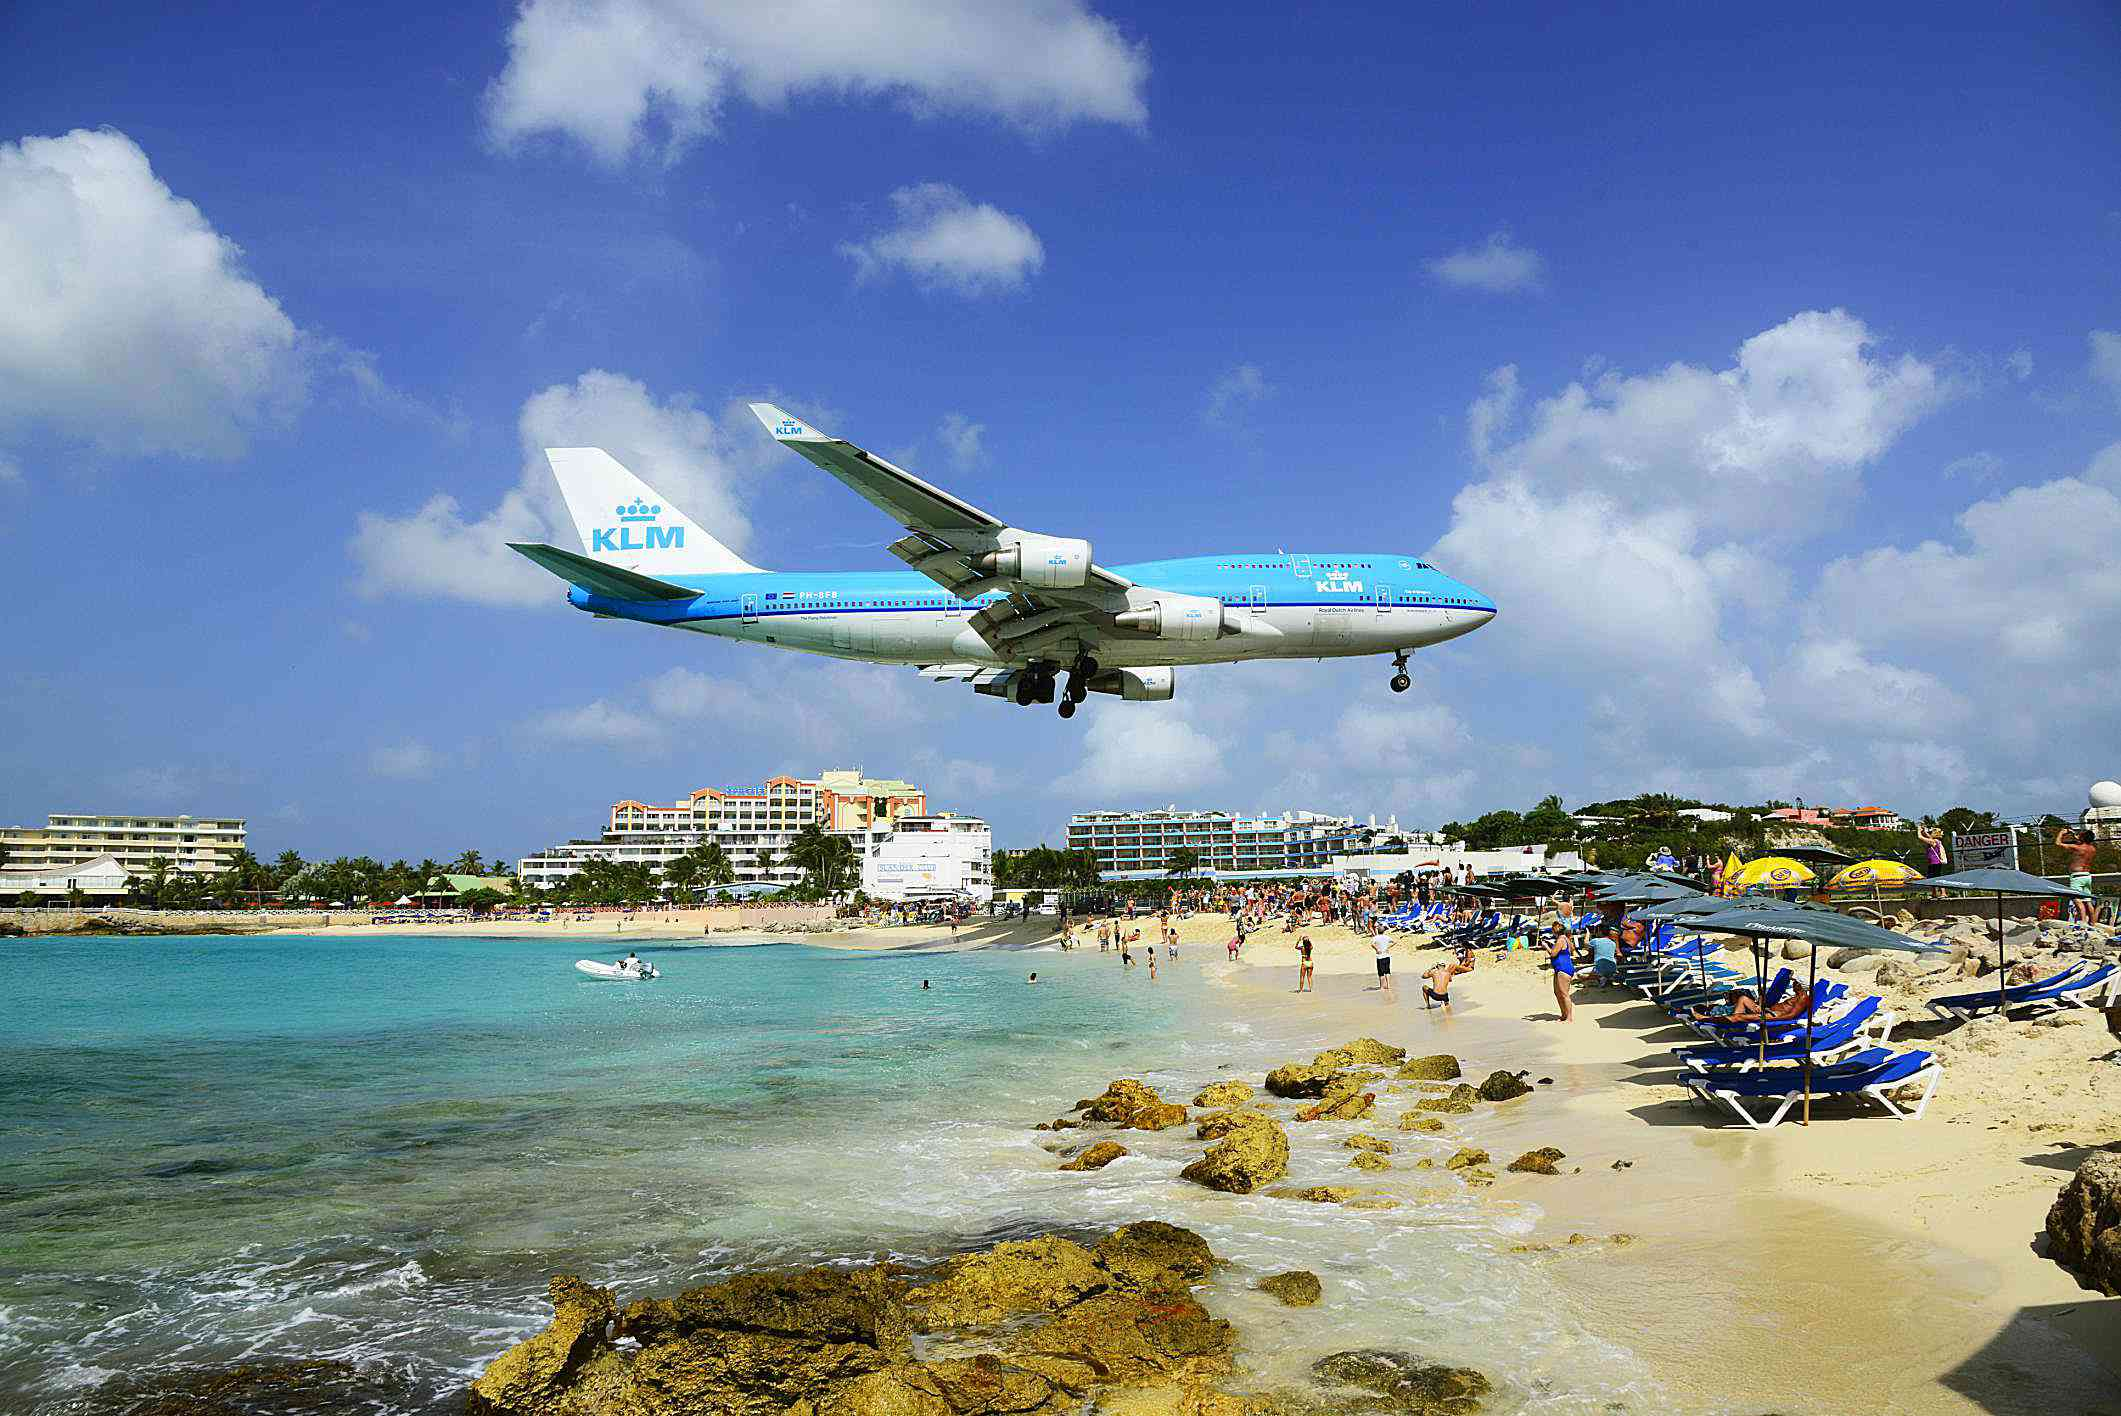 A KLM airplane landing over Maho beach.